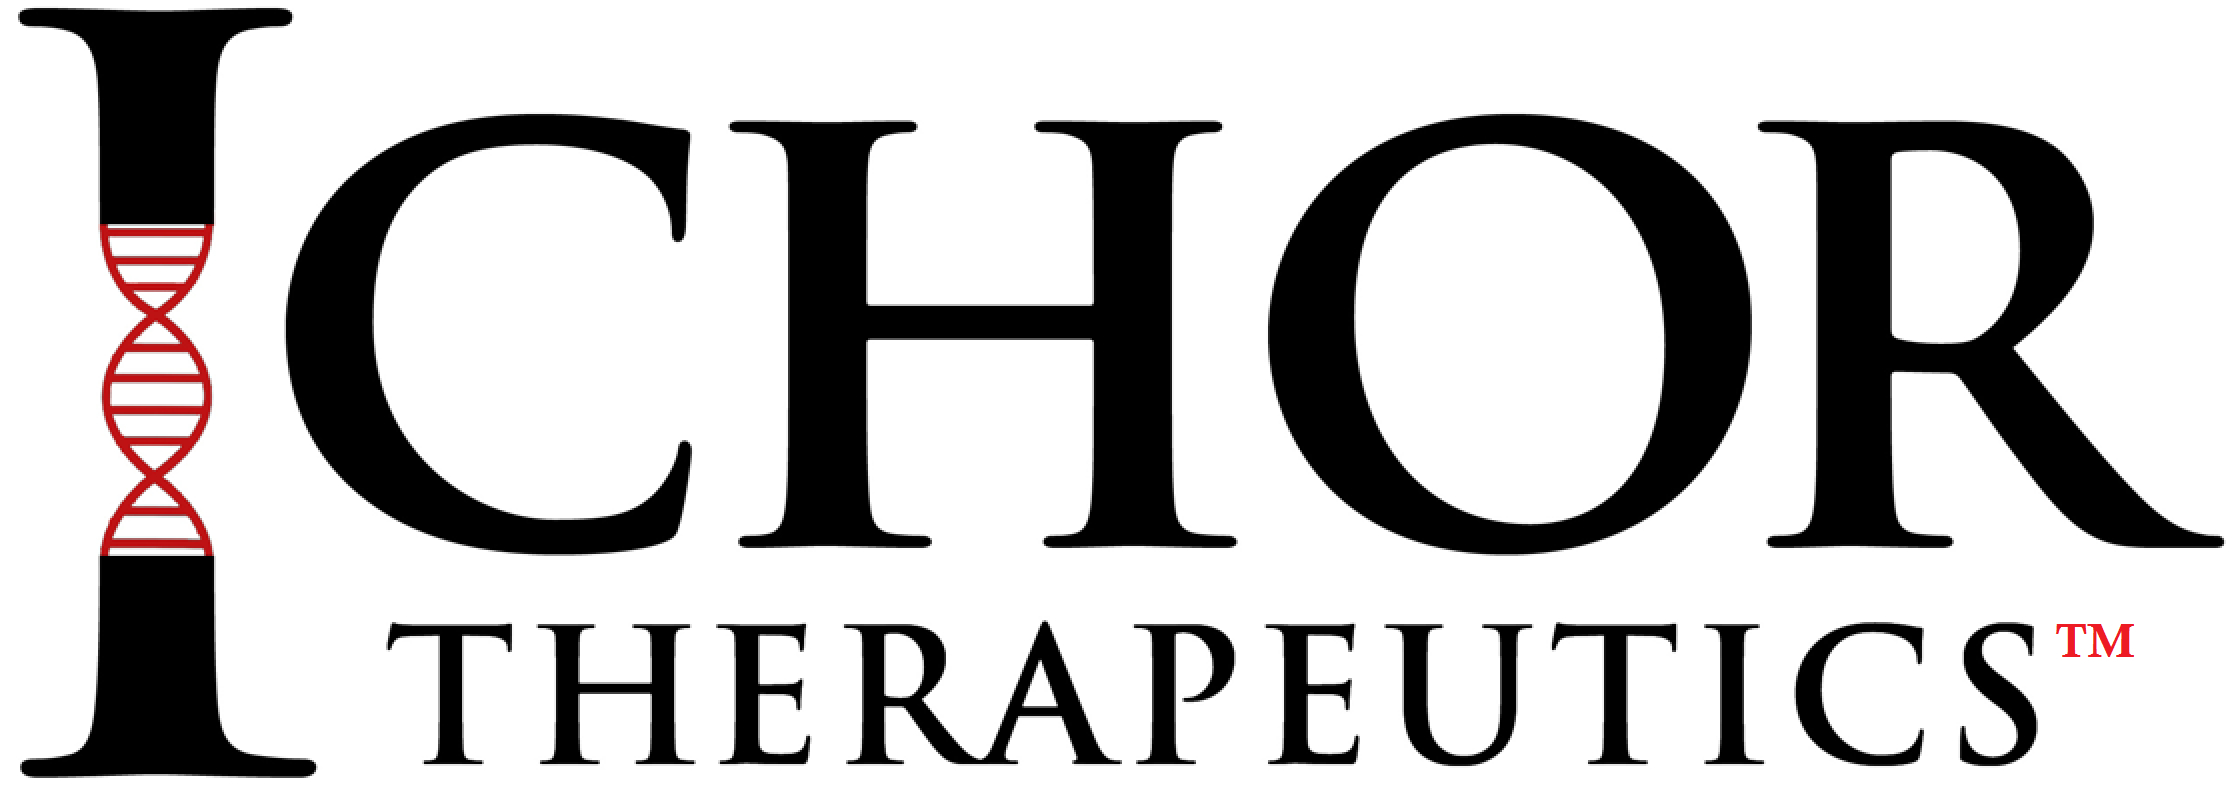 Ichor Therapeutics, Inc.